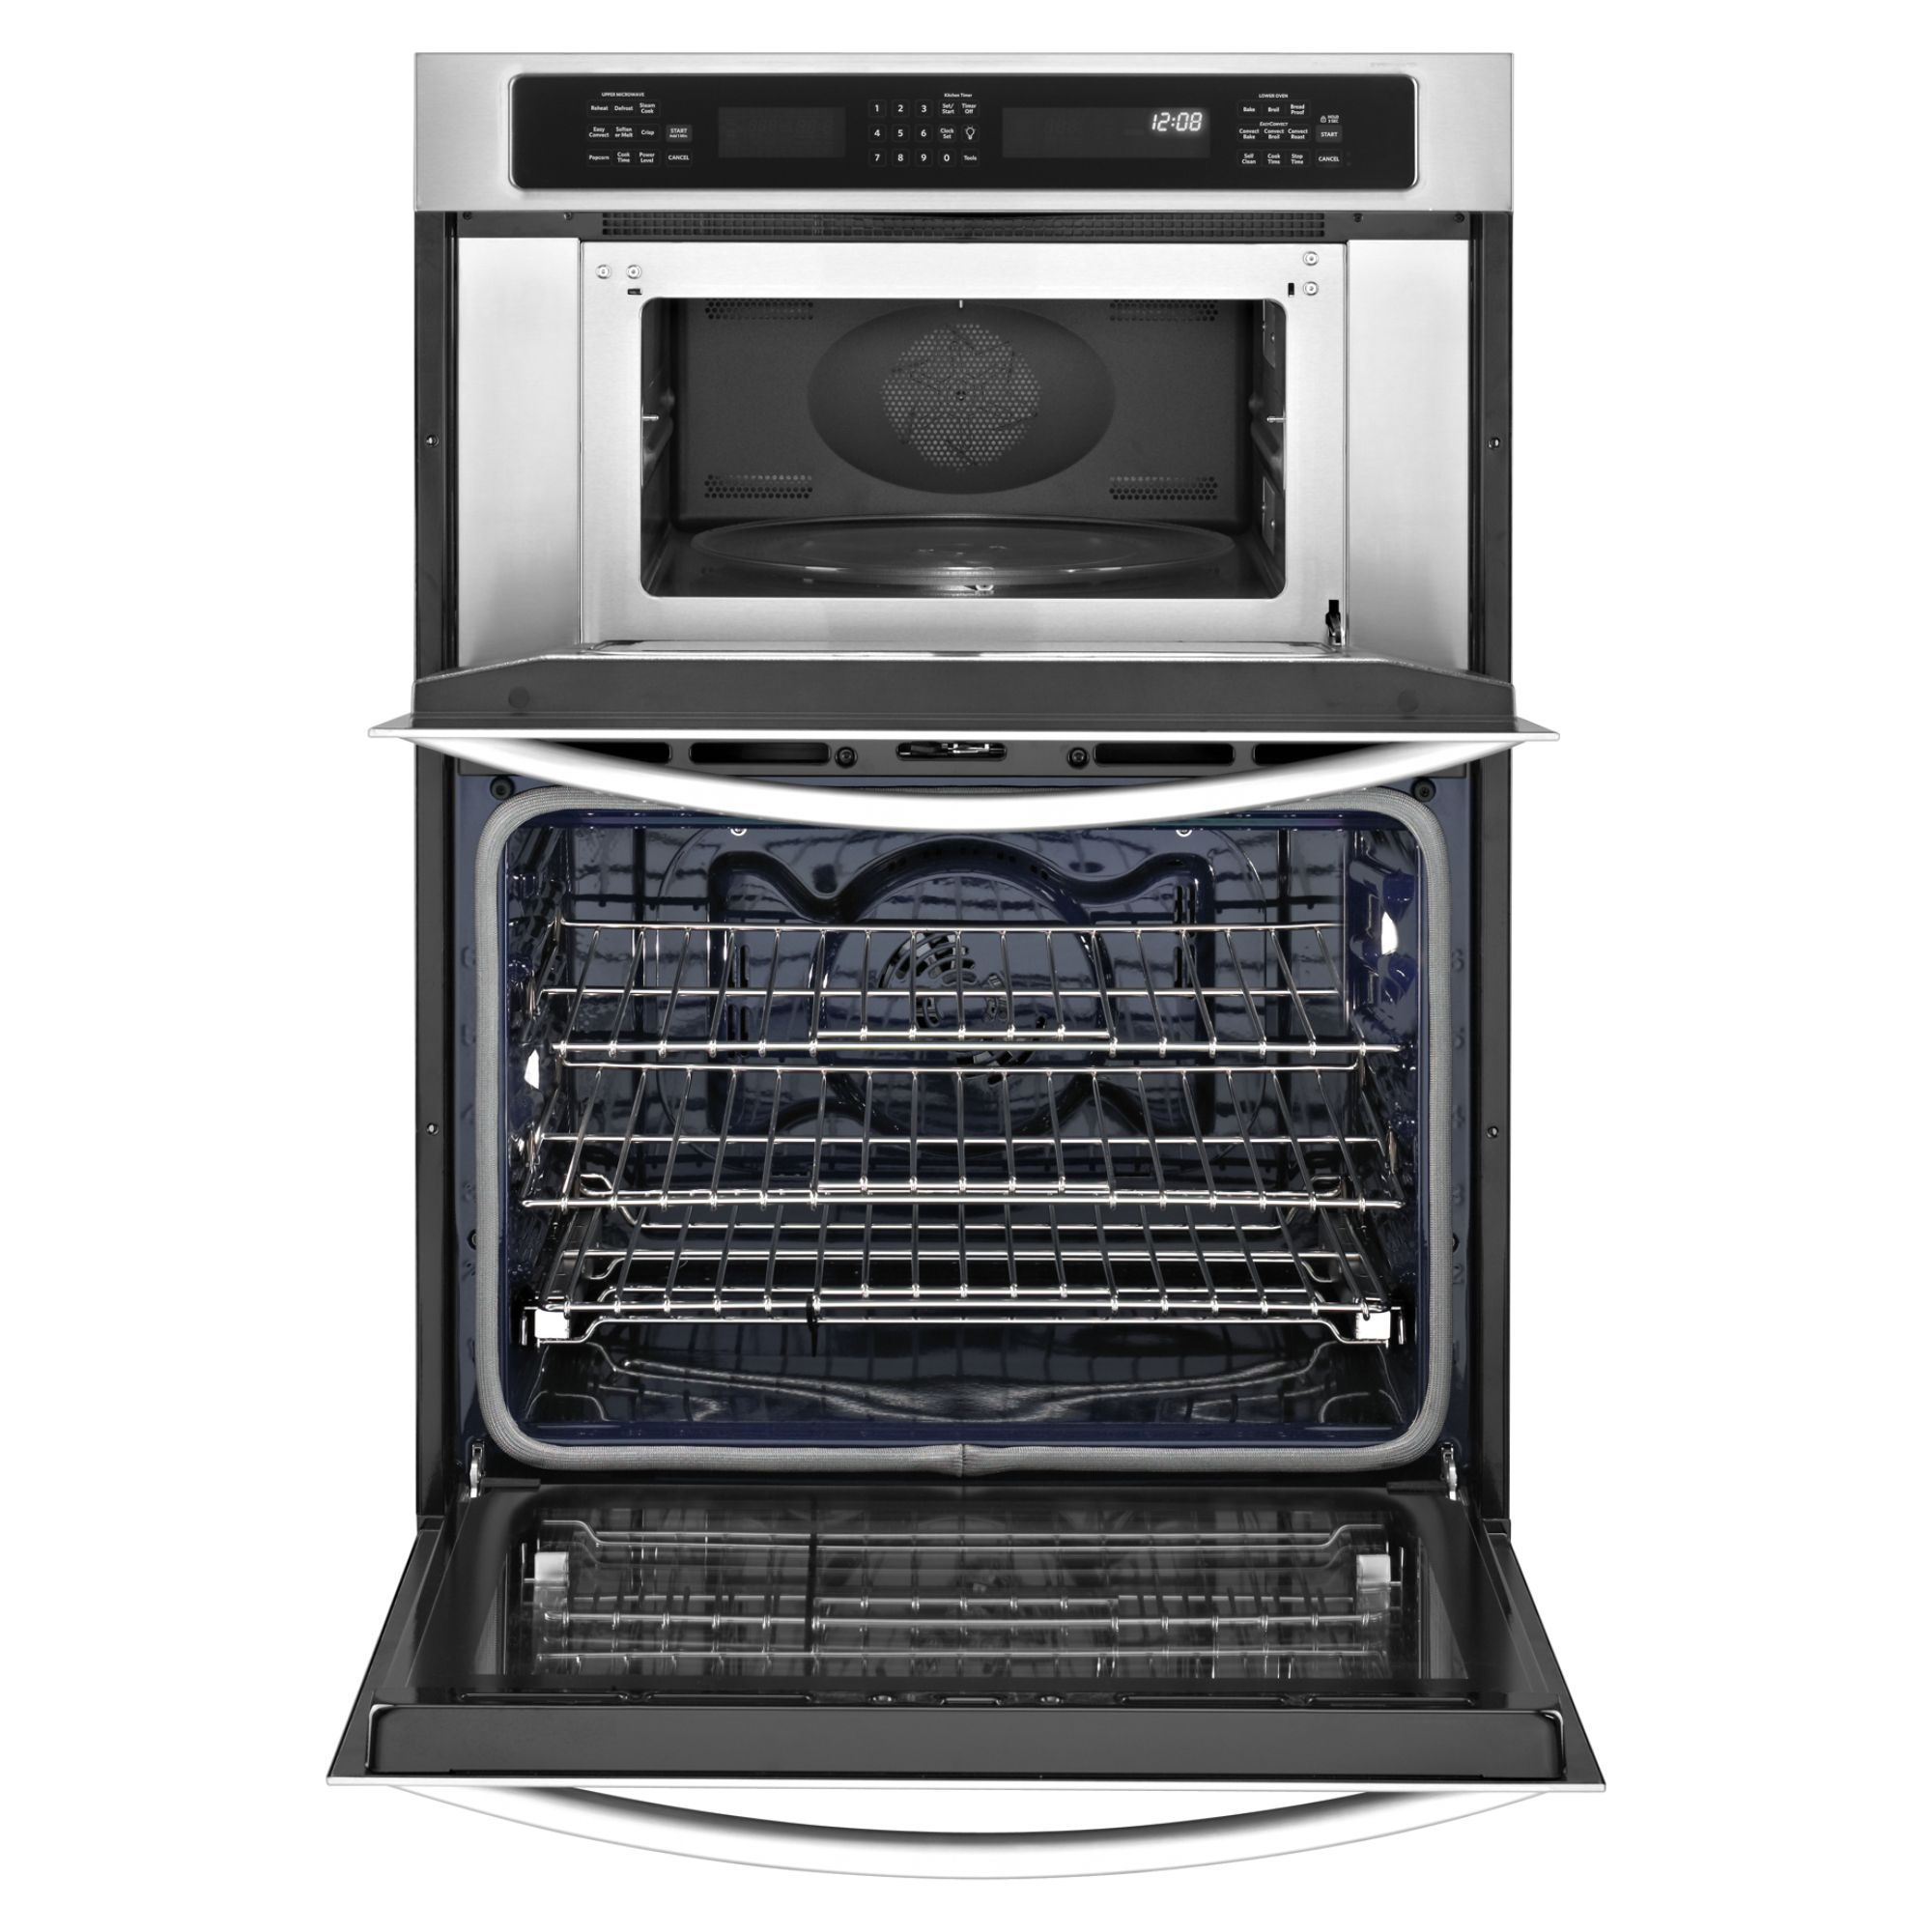 "KitchenAid KEMS309BSS 30"" Built-In Combination Wall Oven w/ True Convection - Stainless Steel"